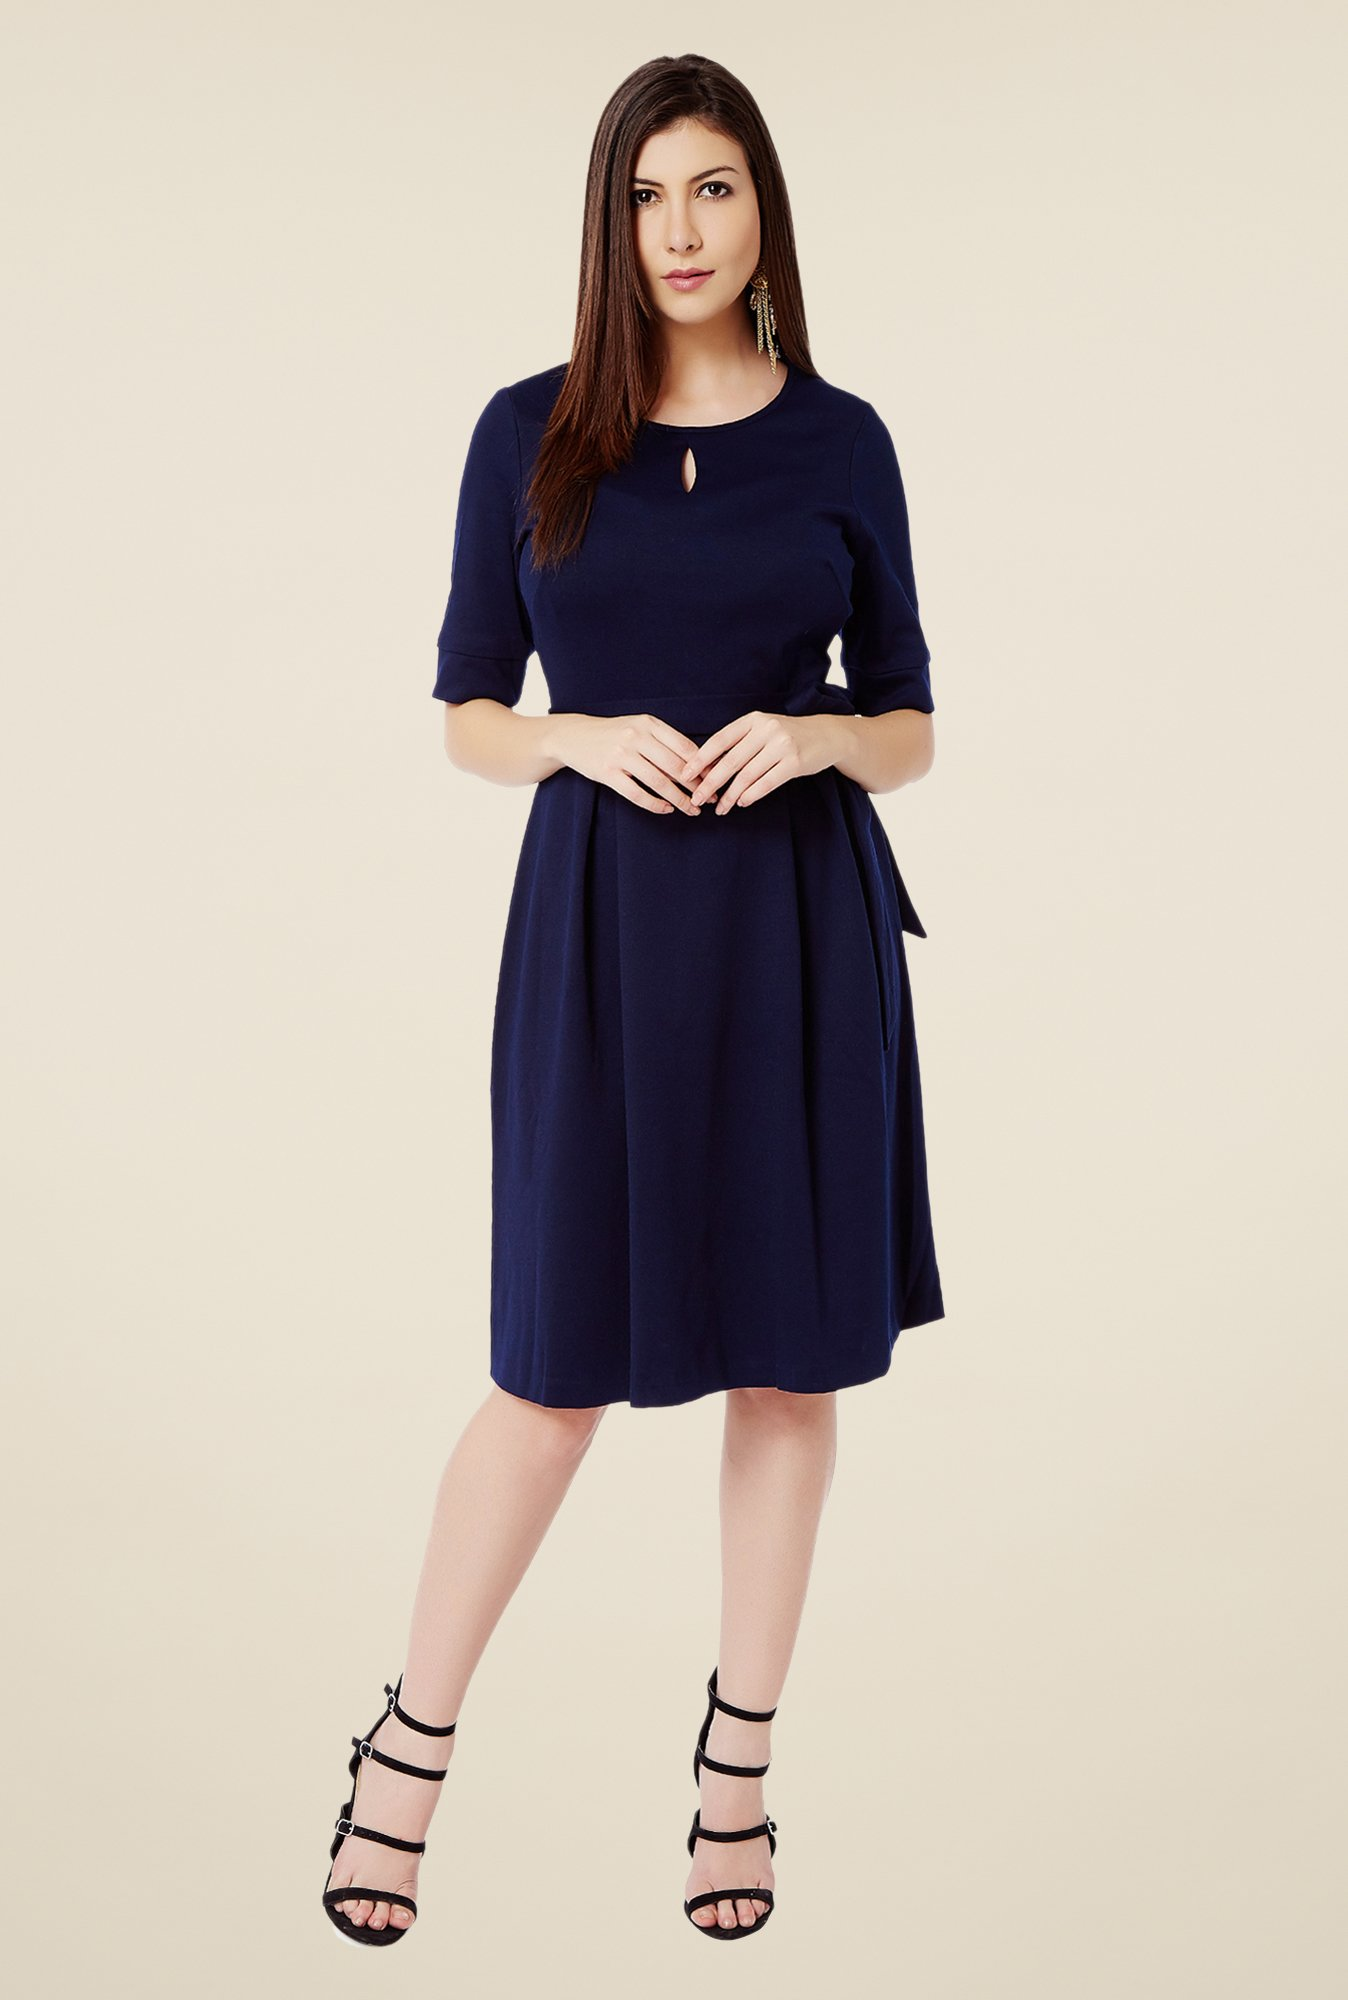 Avirate Navy A-Line Dress